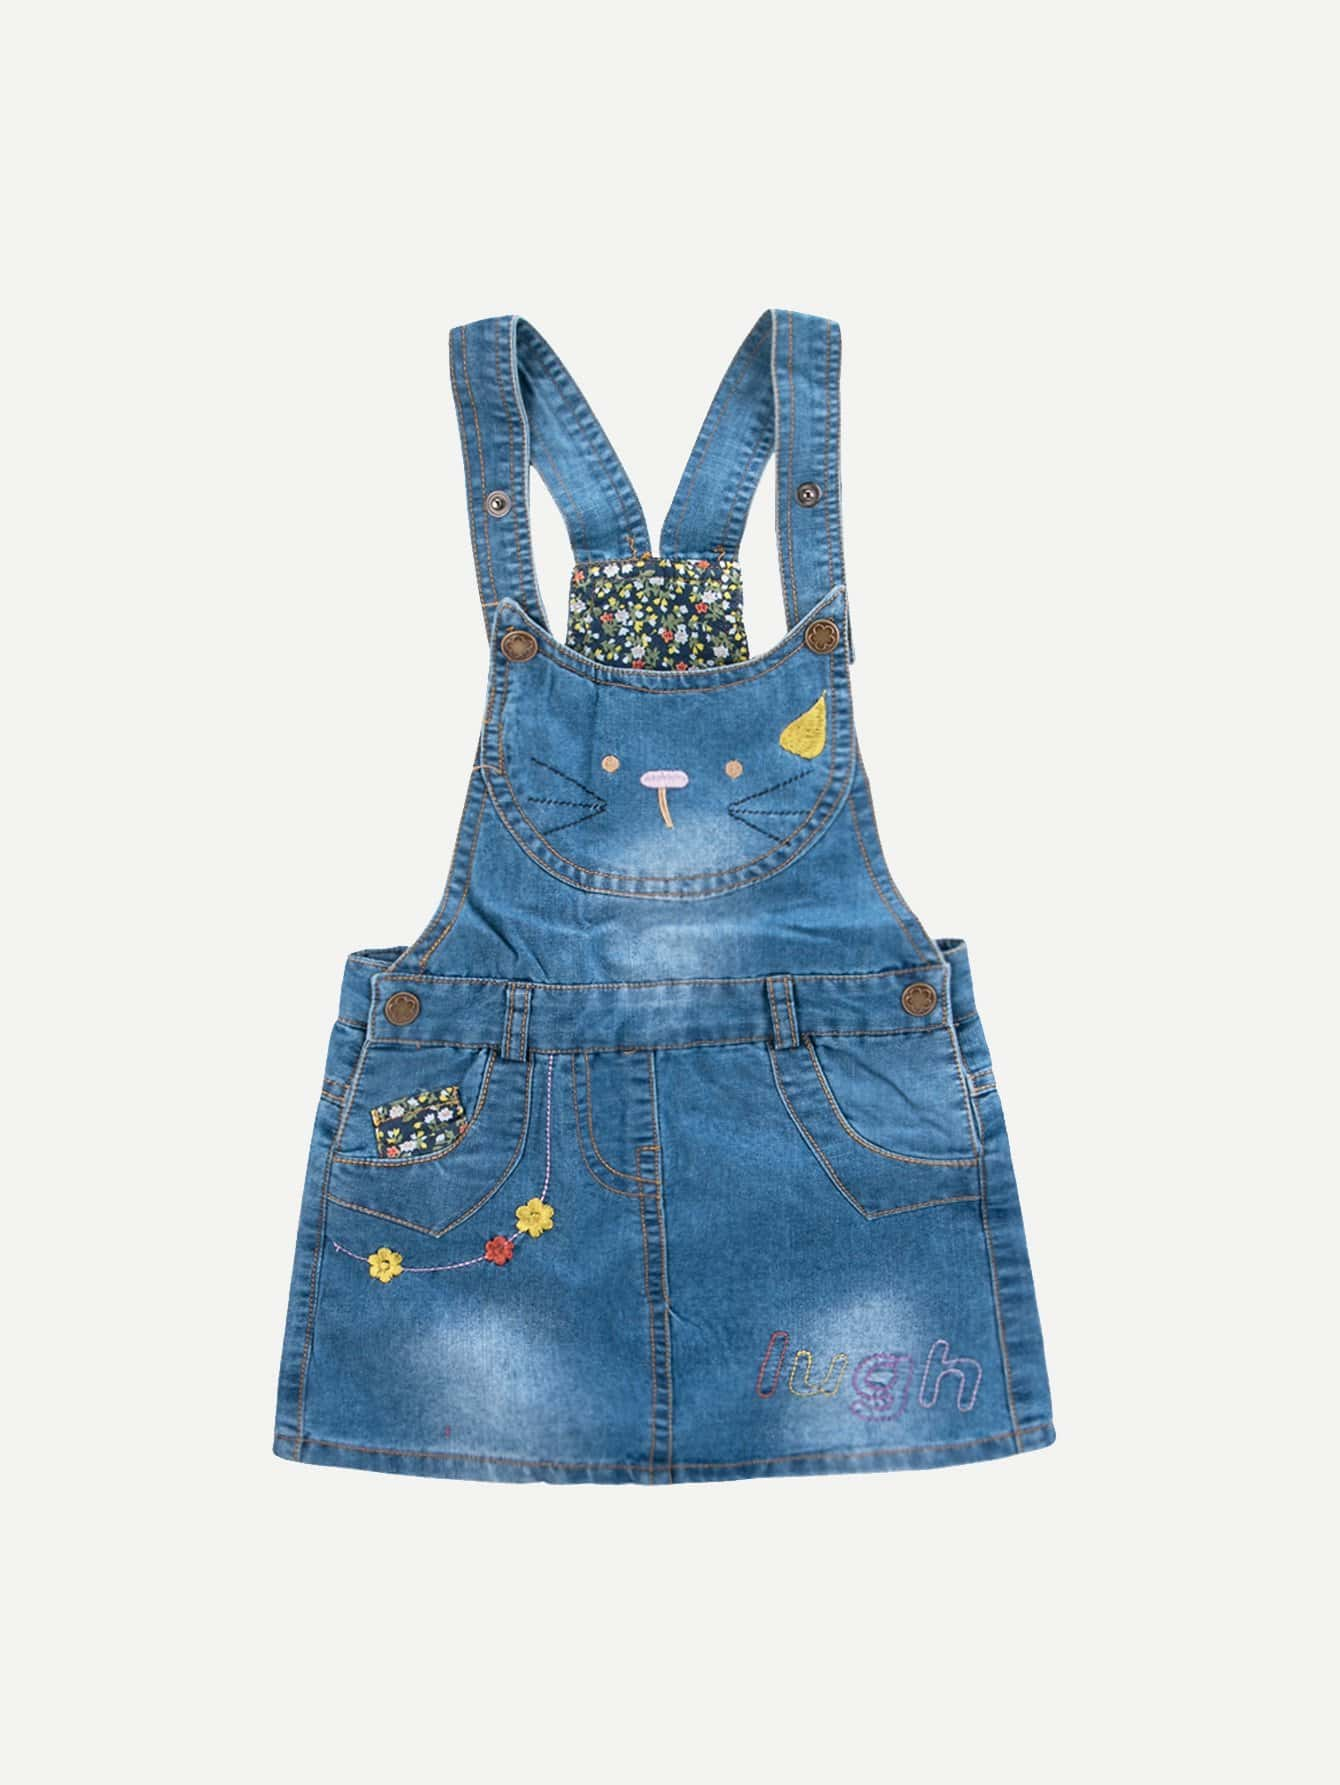 Kids Embroidery Denim Overall Dress overall yumi overall